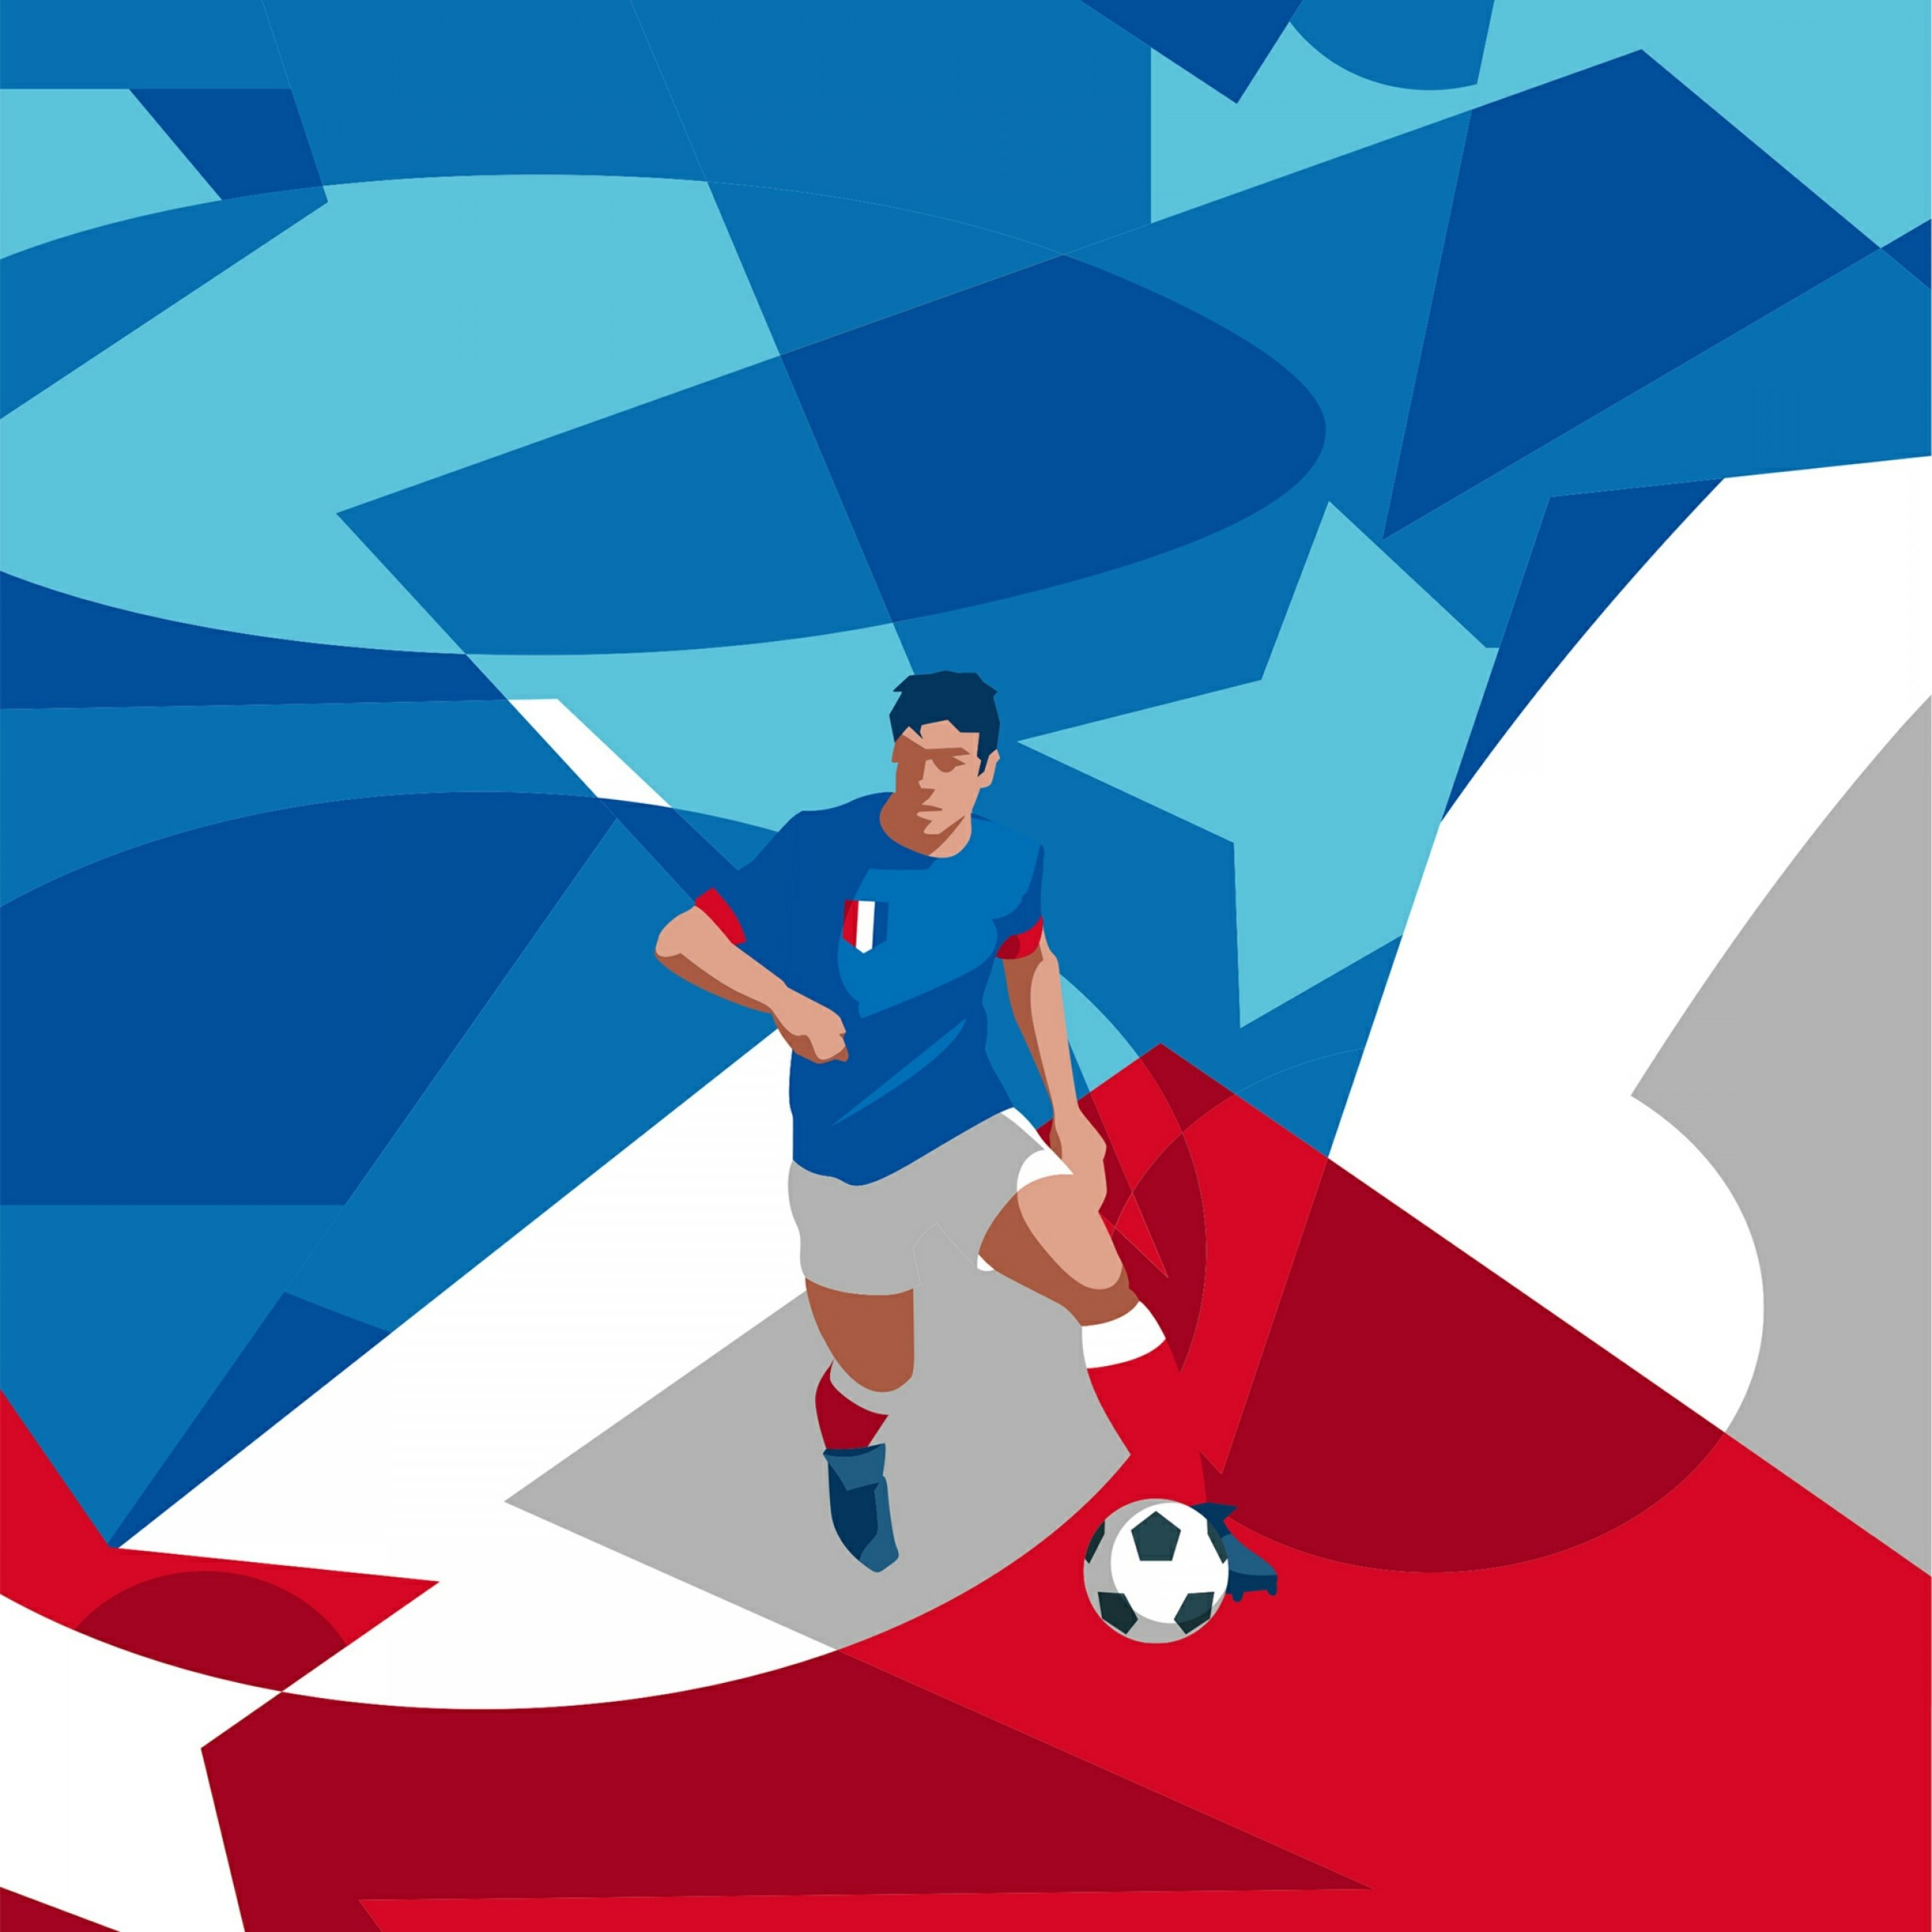 Soccer Blue Background Vector Graphics: A Football Player Vector Graphic Soccer Football Sports Qhd Wallpaper